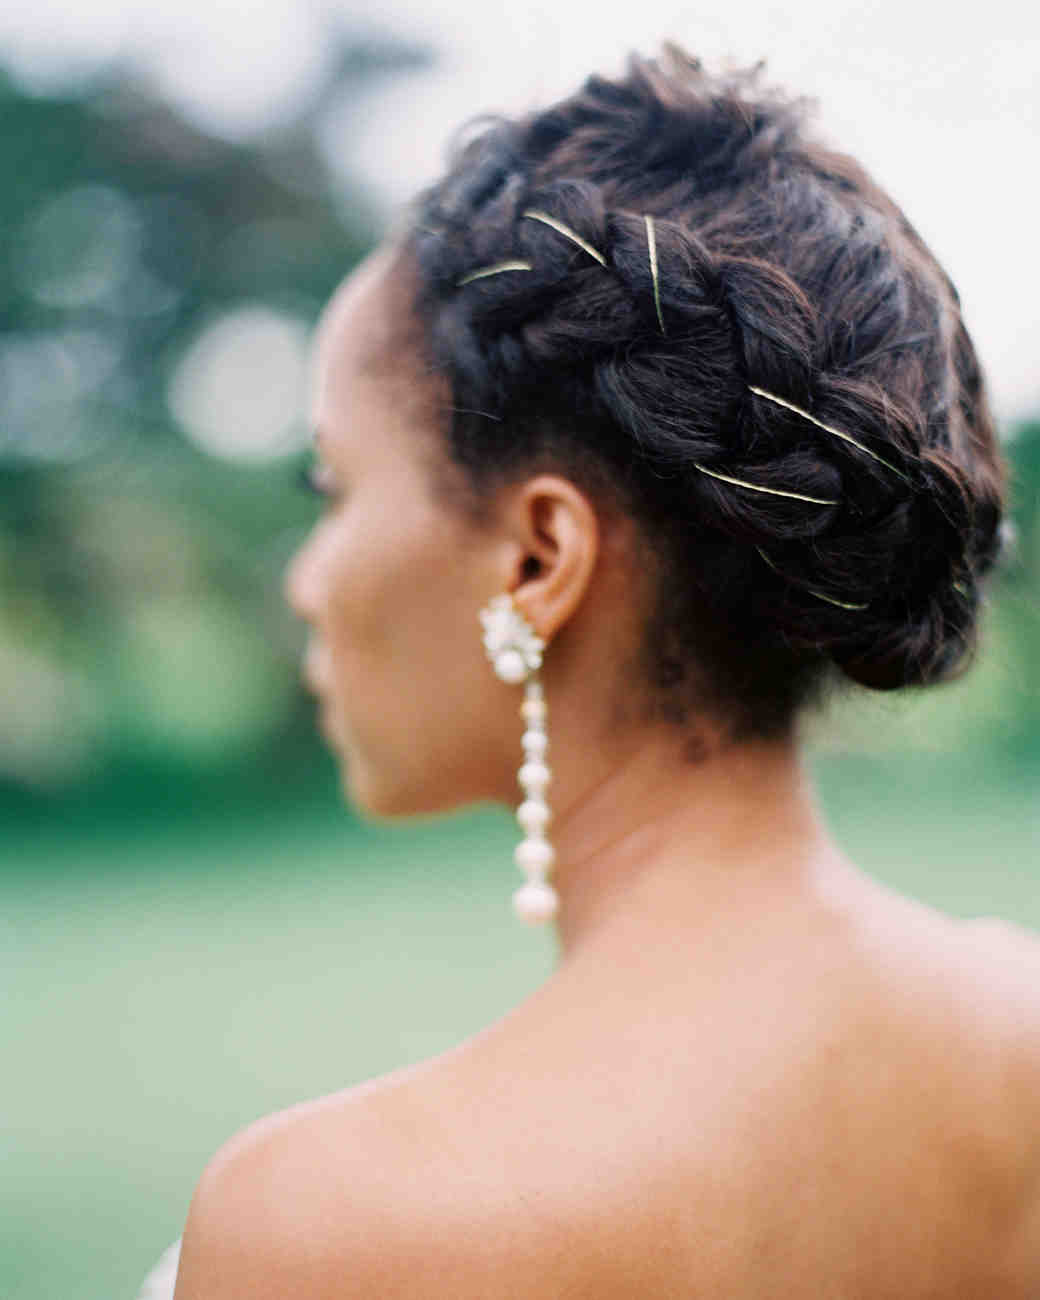 Braid Hairstyles For Wedding Party: 25 Braided Wedding Hairstyles We Love